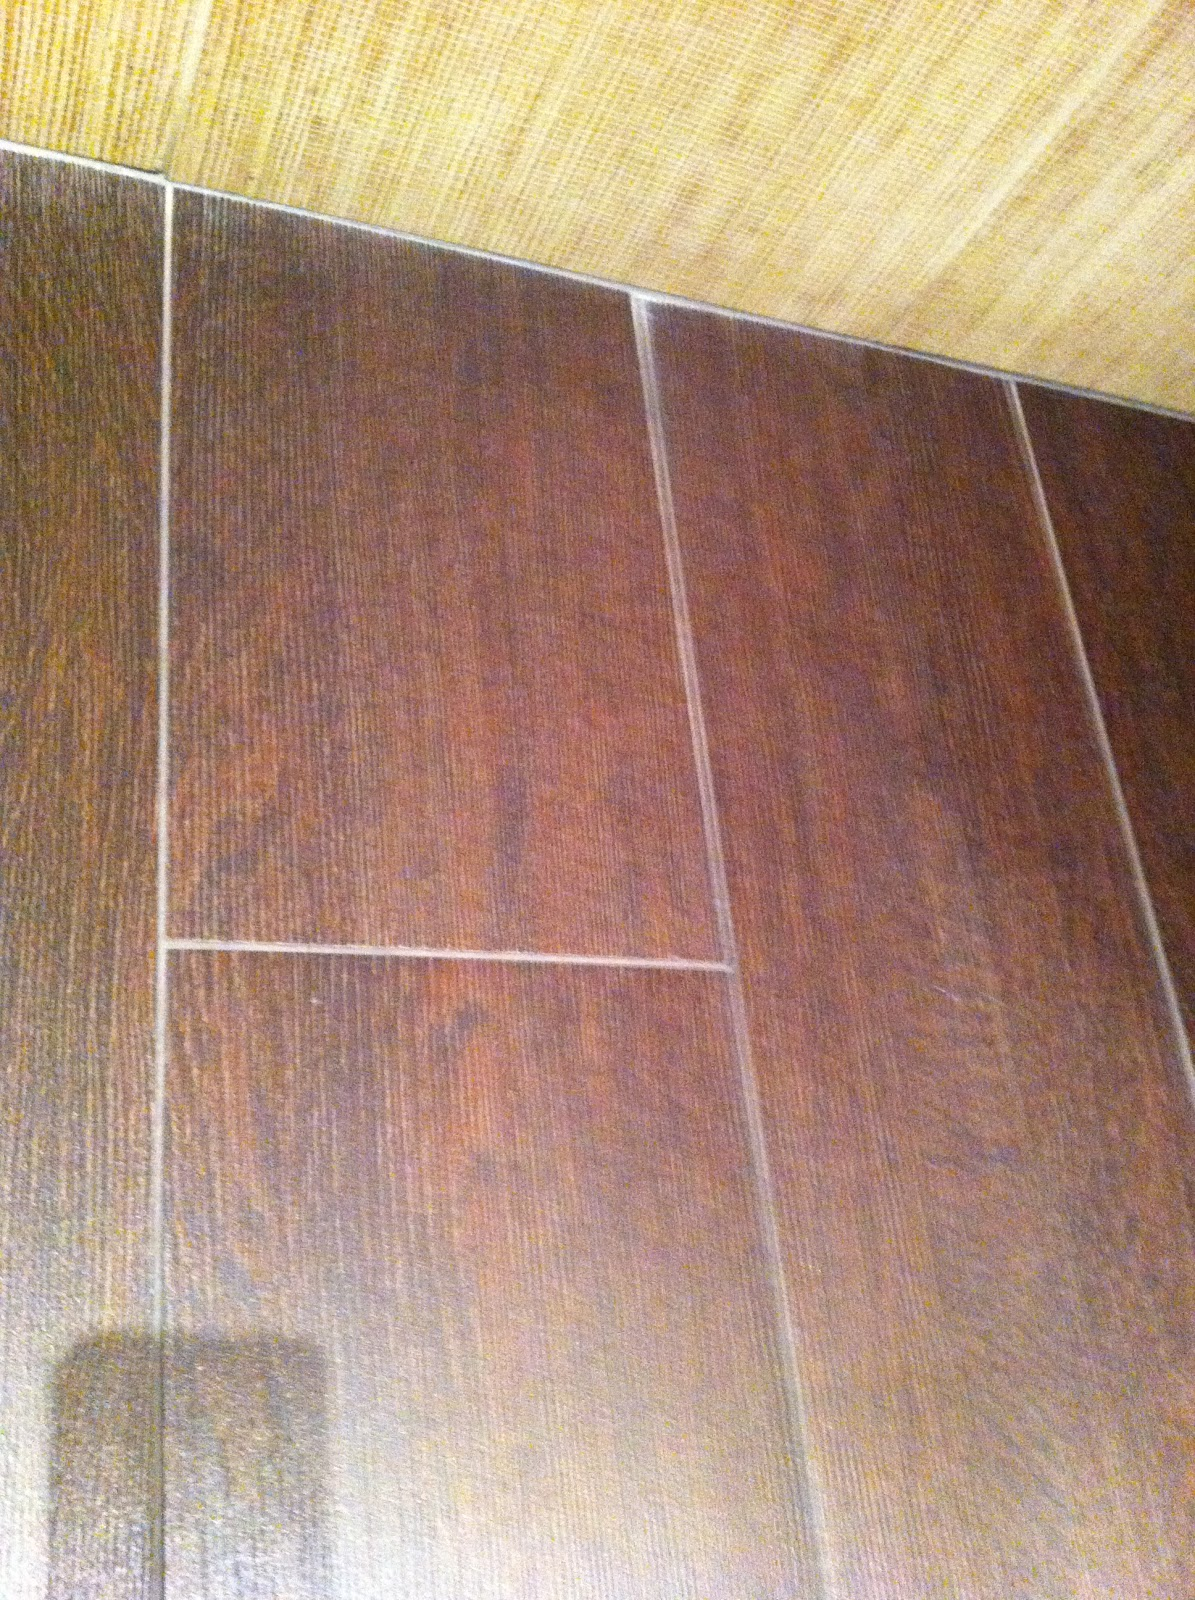 Faux wood flooring crowdbuild for for Fake wood flooring